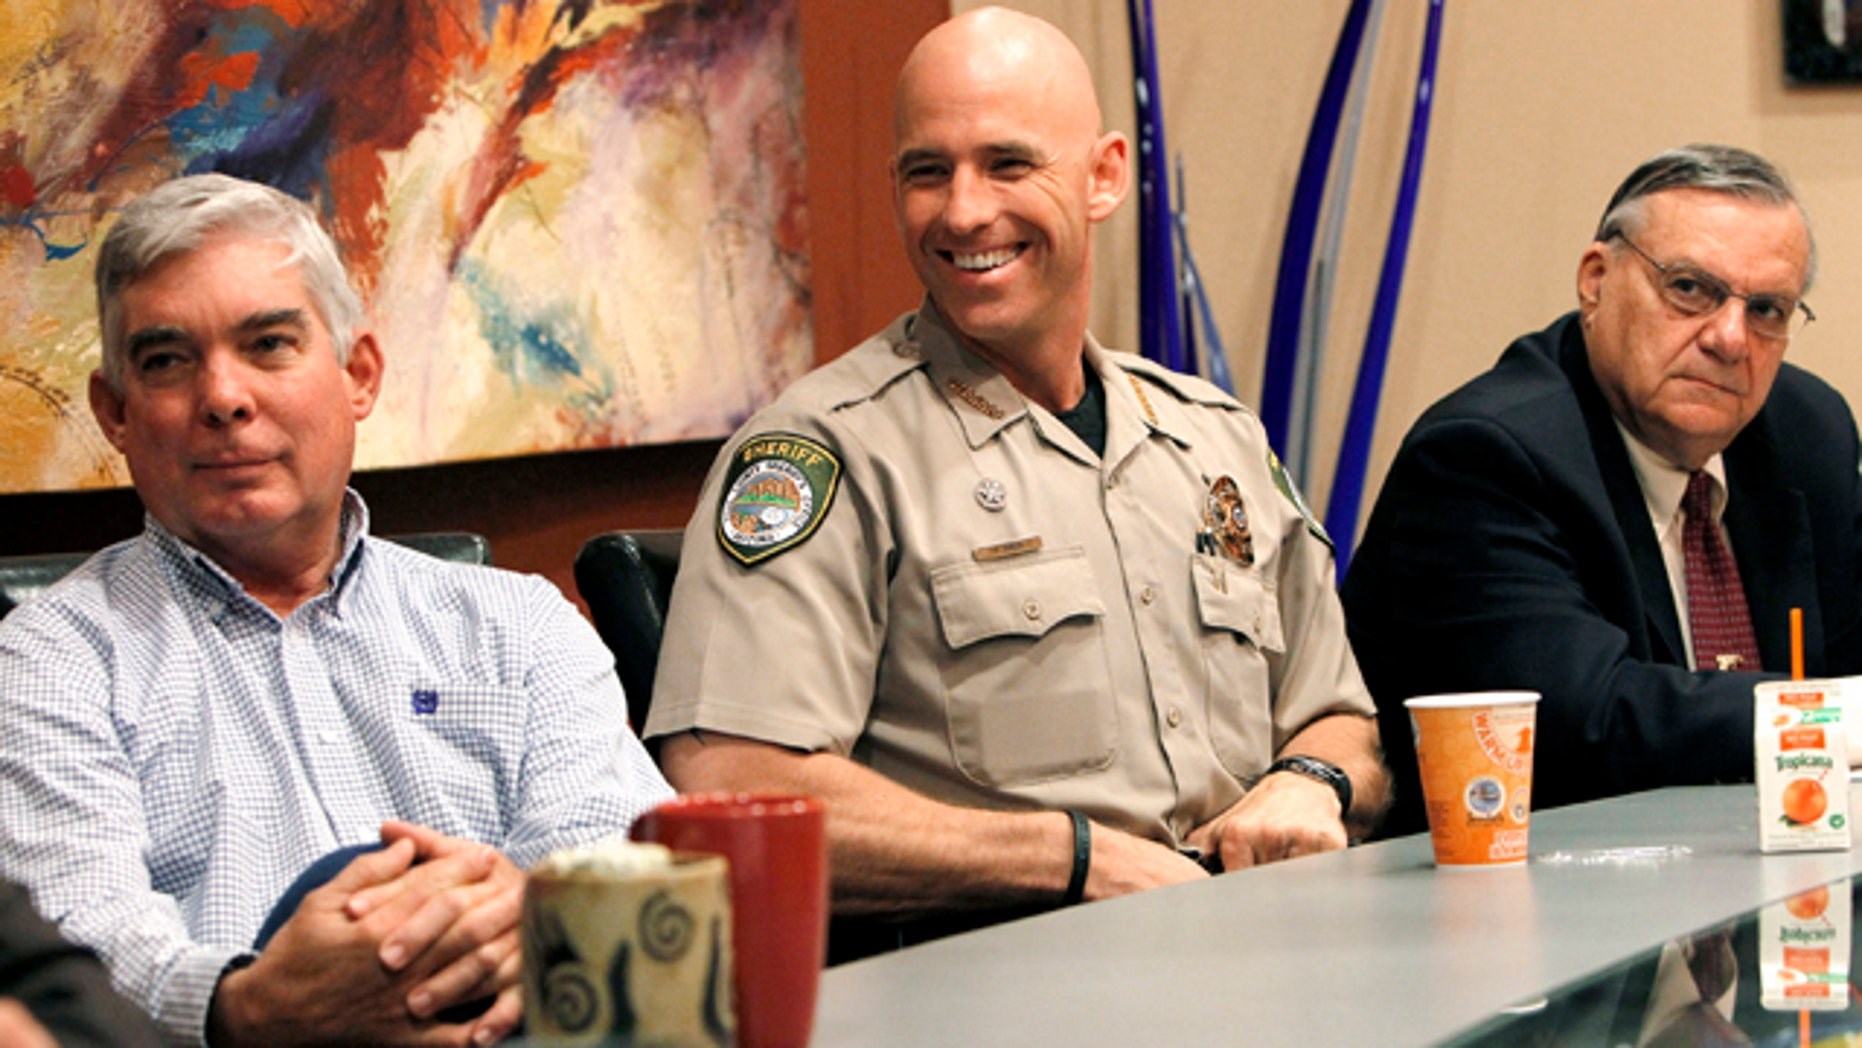 Nov. 1: From left, Cochise County Sheriff Larry Dever, Pinal County Sheriff Paul Babeu, and Maricopa County Sheriff Joe Arpaio watch the proceedings, as the 9th U.S. Circuit Court of Appeals takes up the new Arizona immigration law, at the Rose Law Group offices in Scottsdale, Ariz.